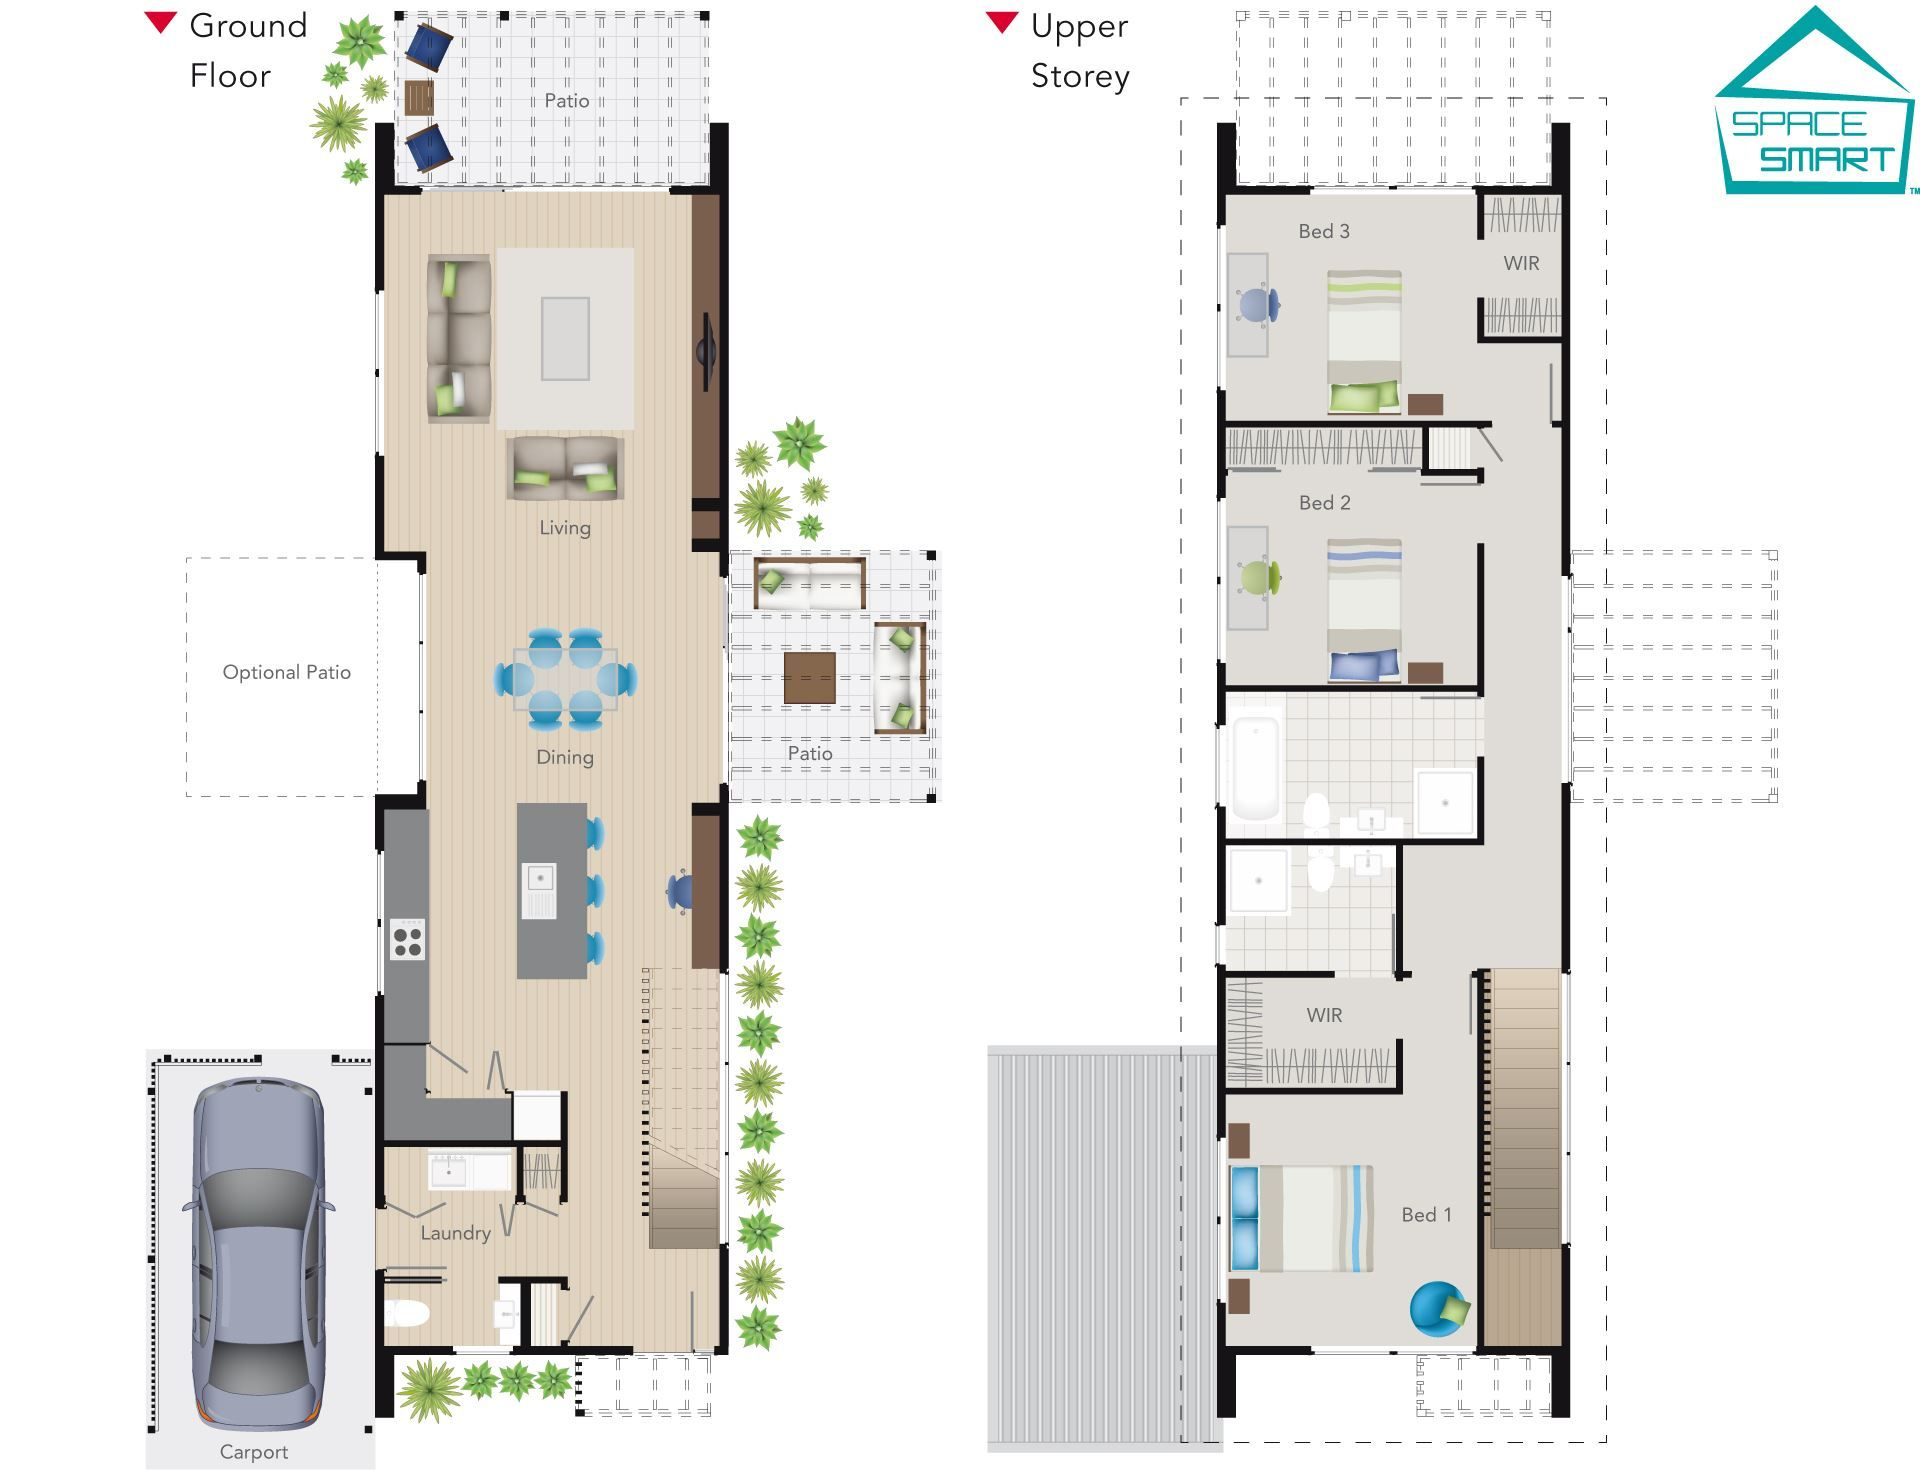 A narrow two story space smart house plan perfect for modern living on a small narrow section